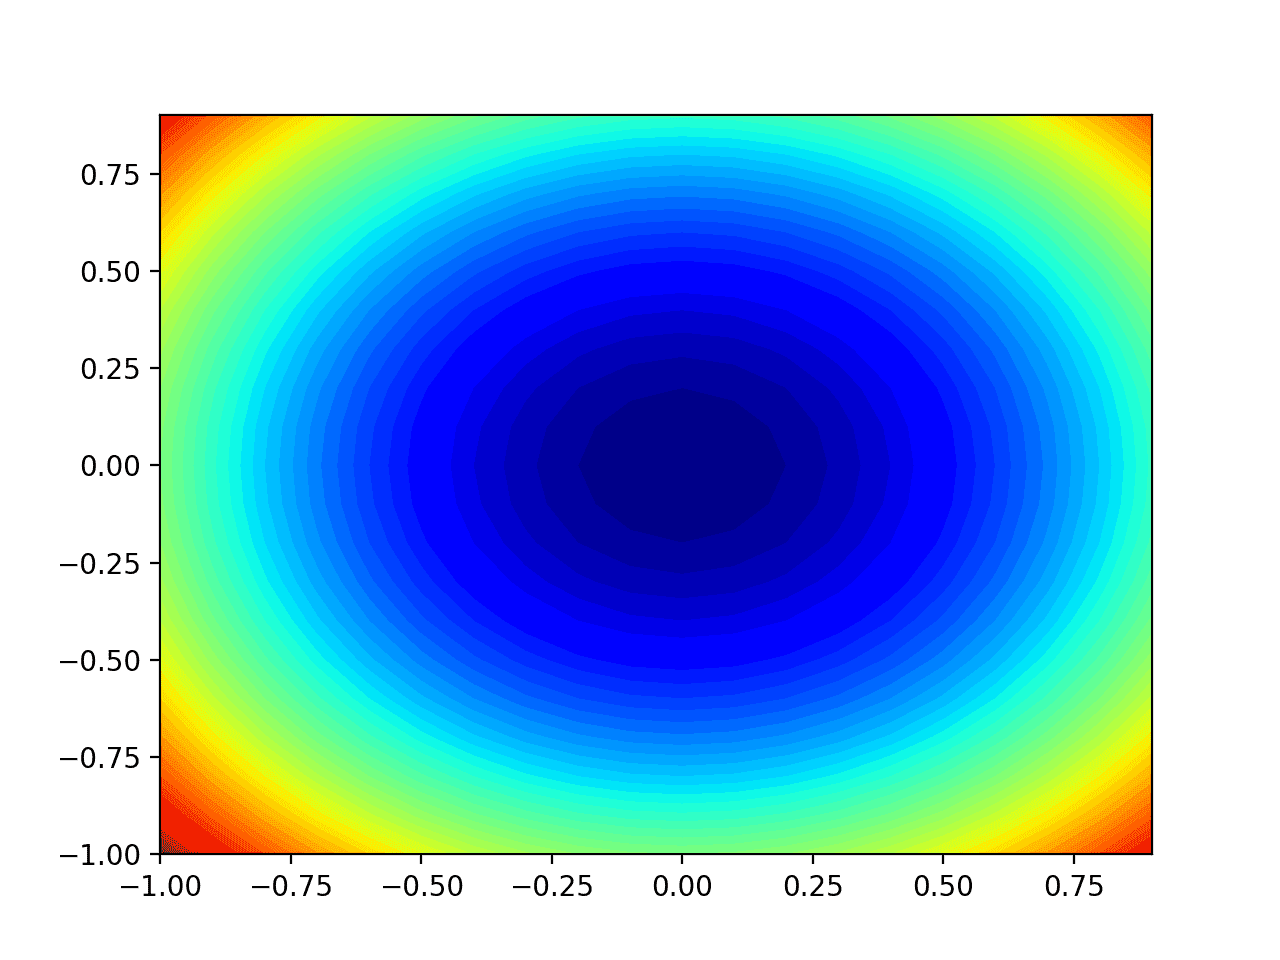 Two-Dimensional Contour Plot of the Test Objective Function